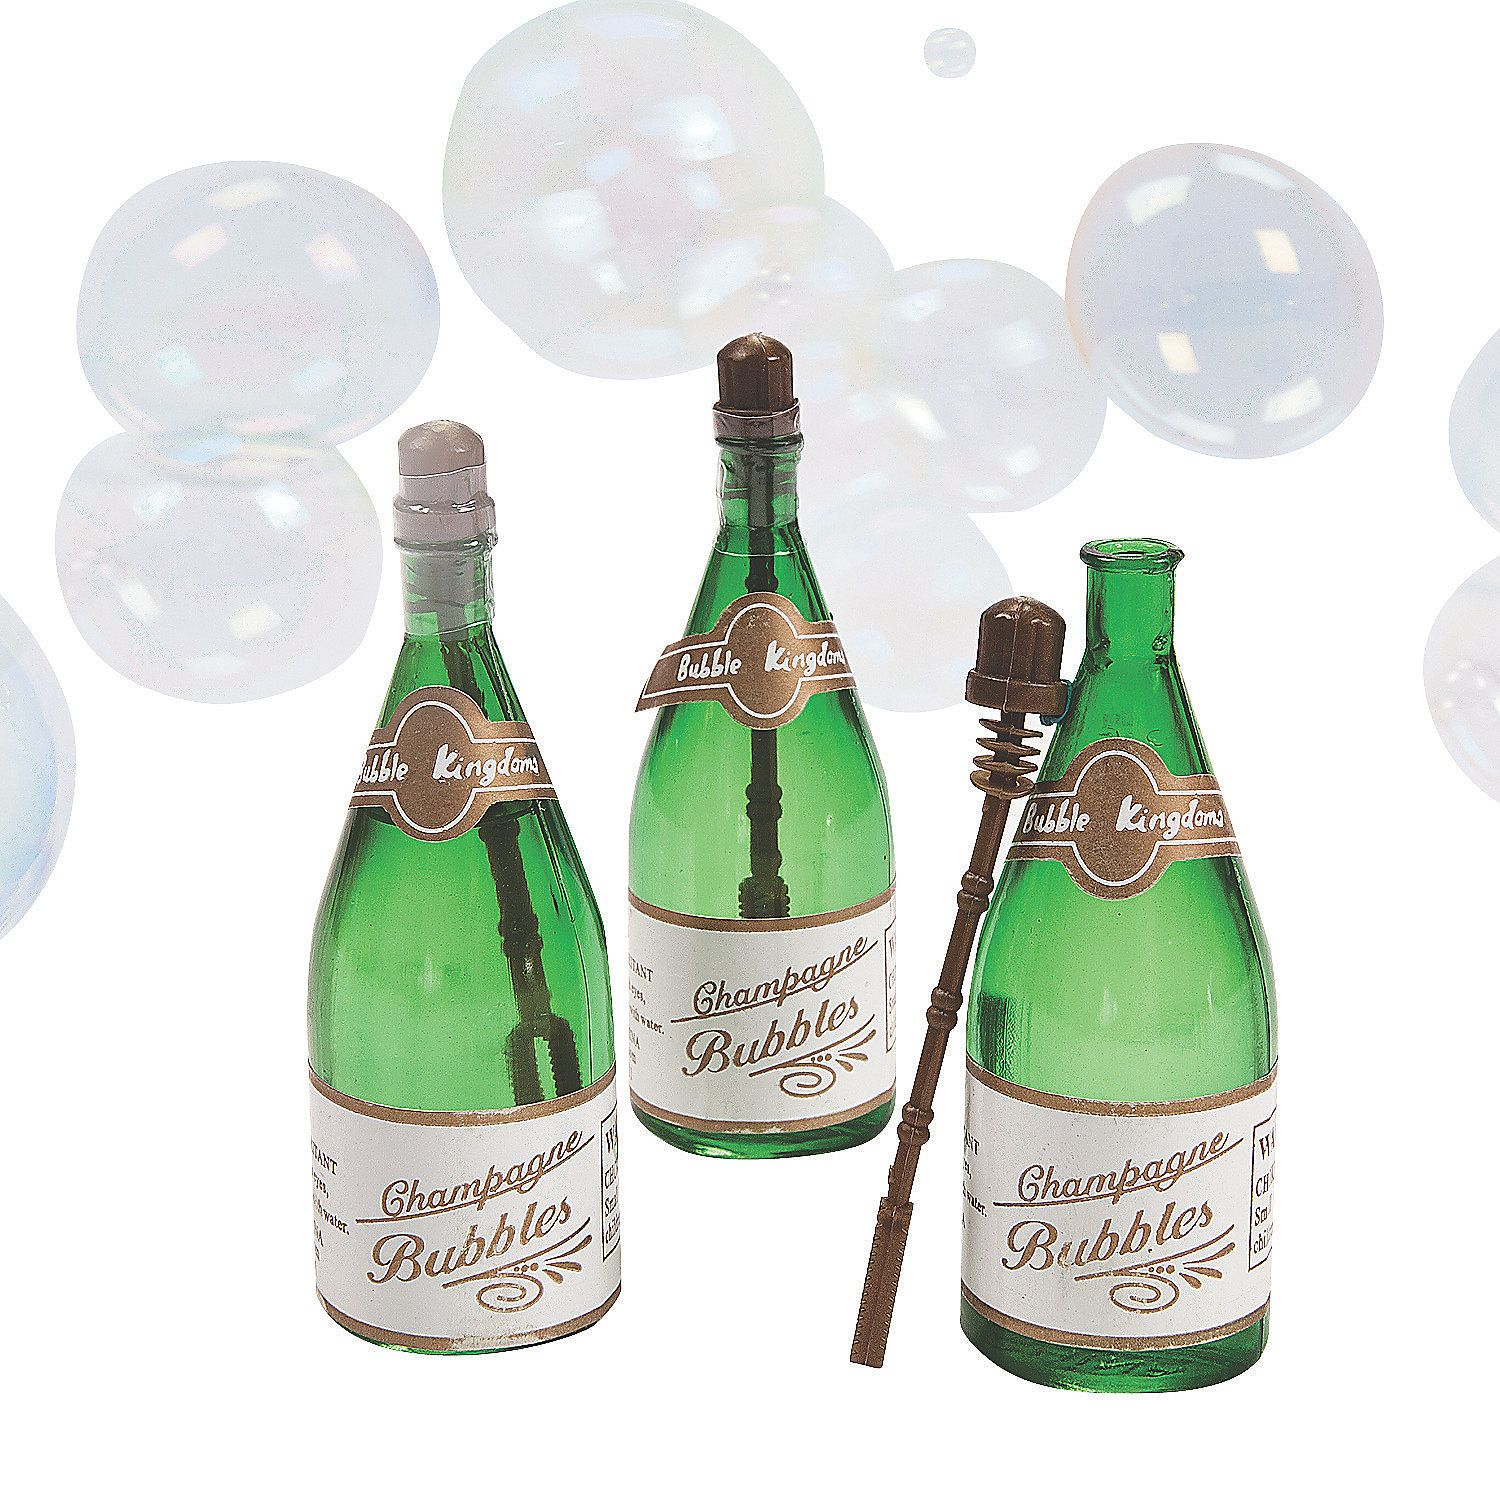 Mini Champagne Bottle Bubbles | Mini champagne bottles, Champagne ...